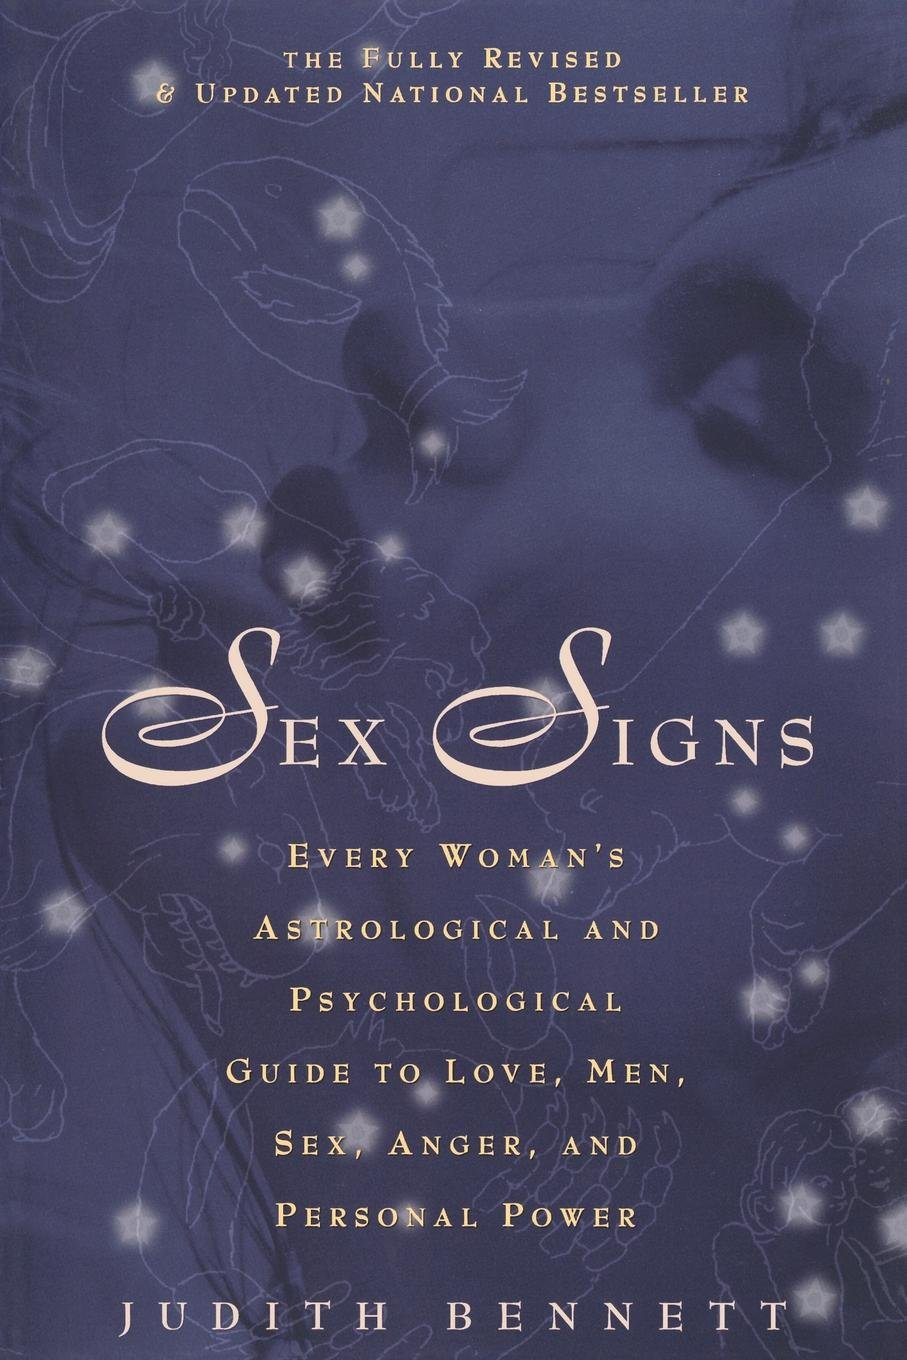 Book title everywoman sexual guide